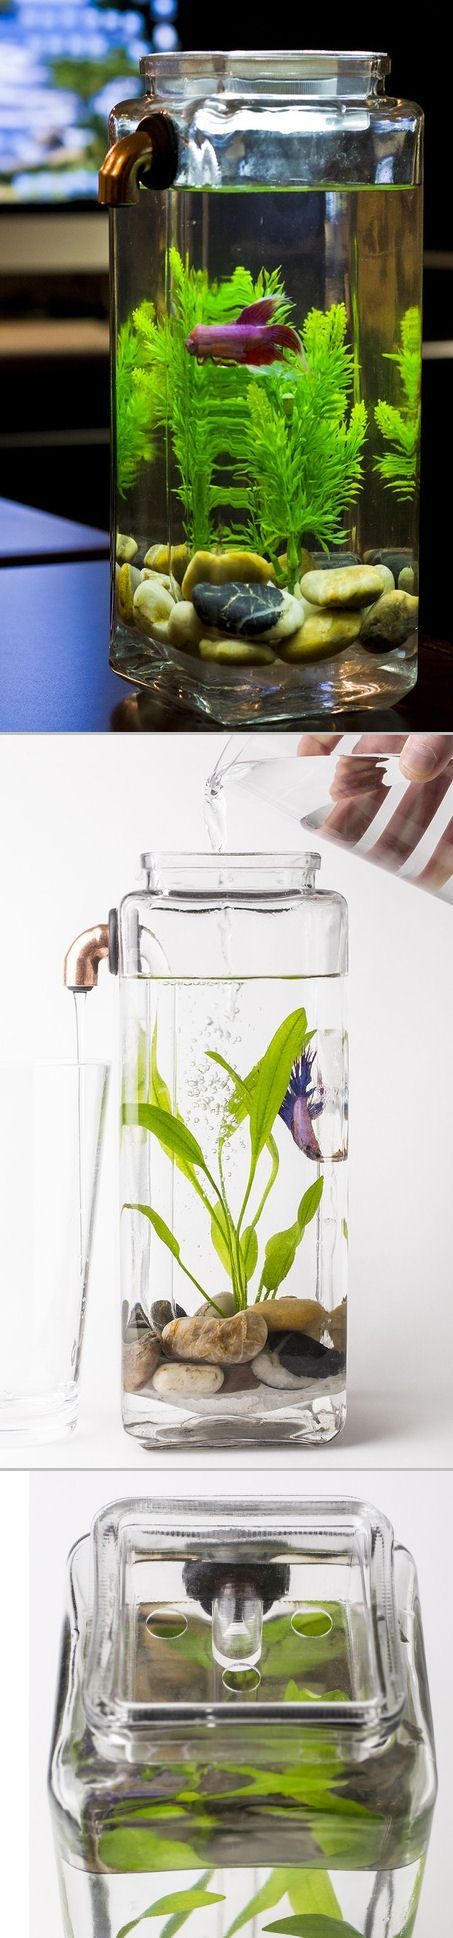 233 best images about aquariums on pinterest for Dirty fish tank